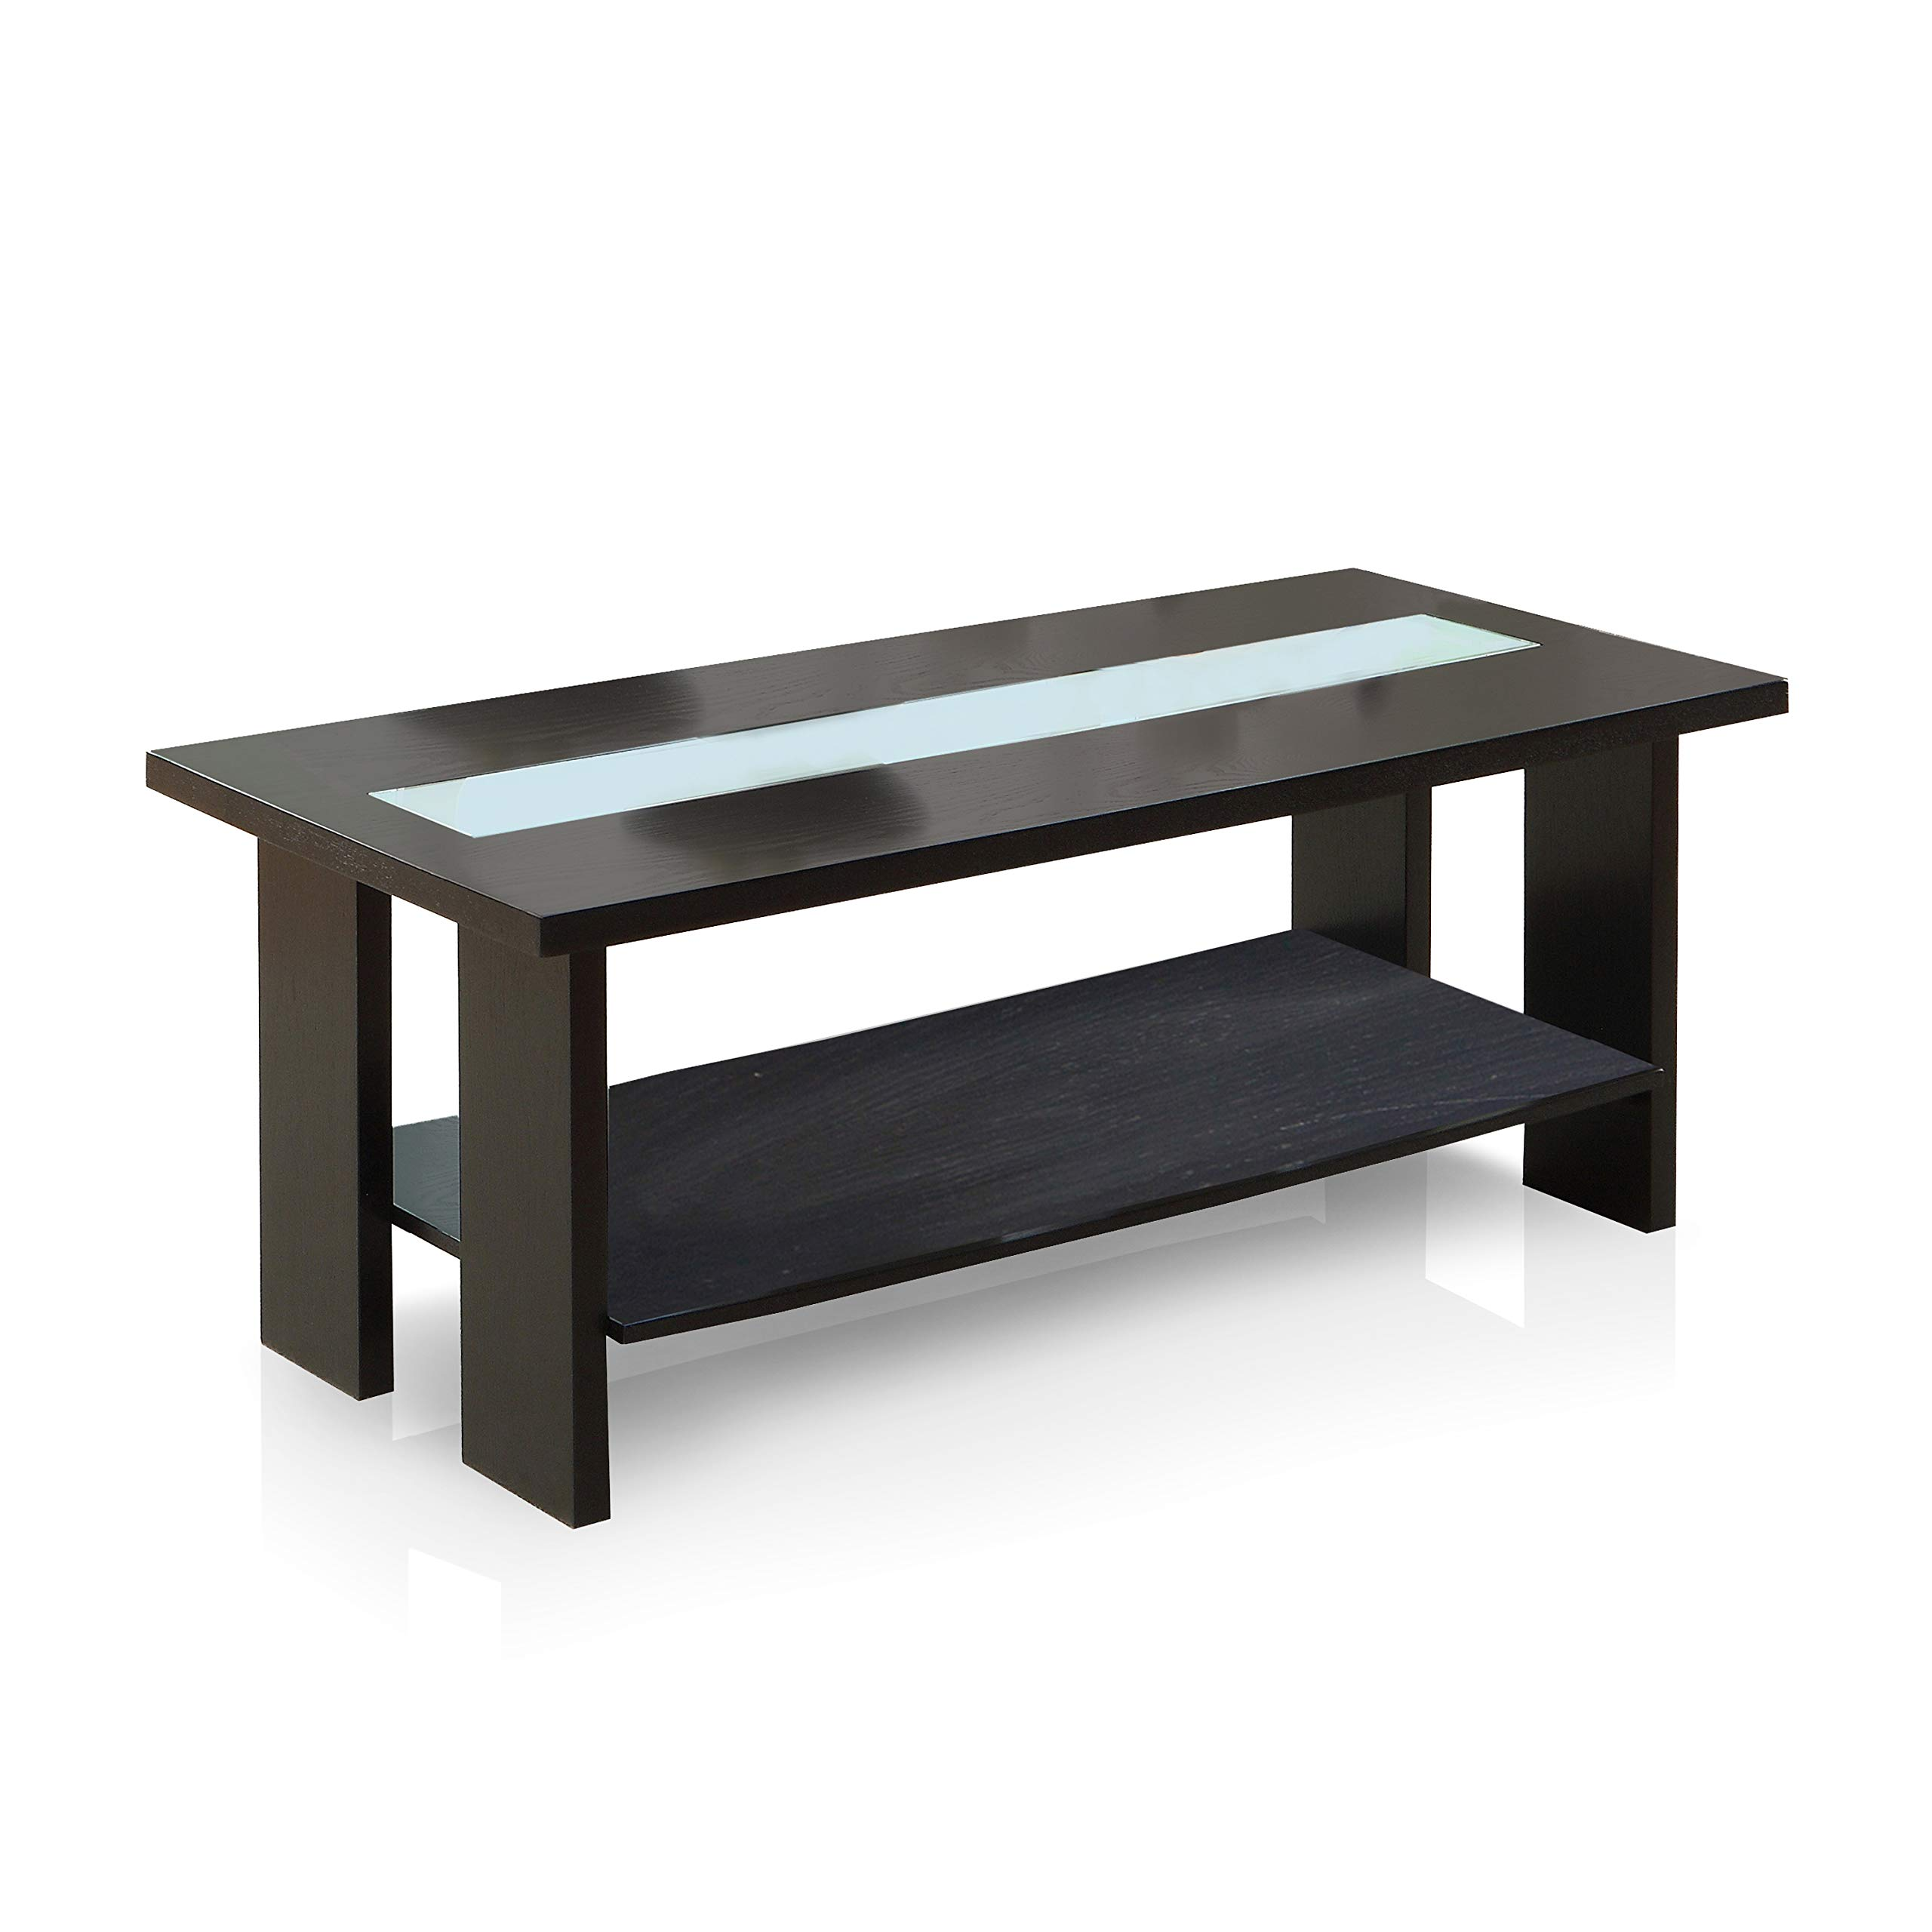 Furniture of America Crownguard 3-Way LED Lighted Coffee Table